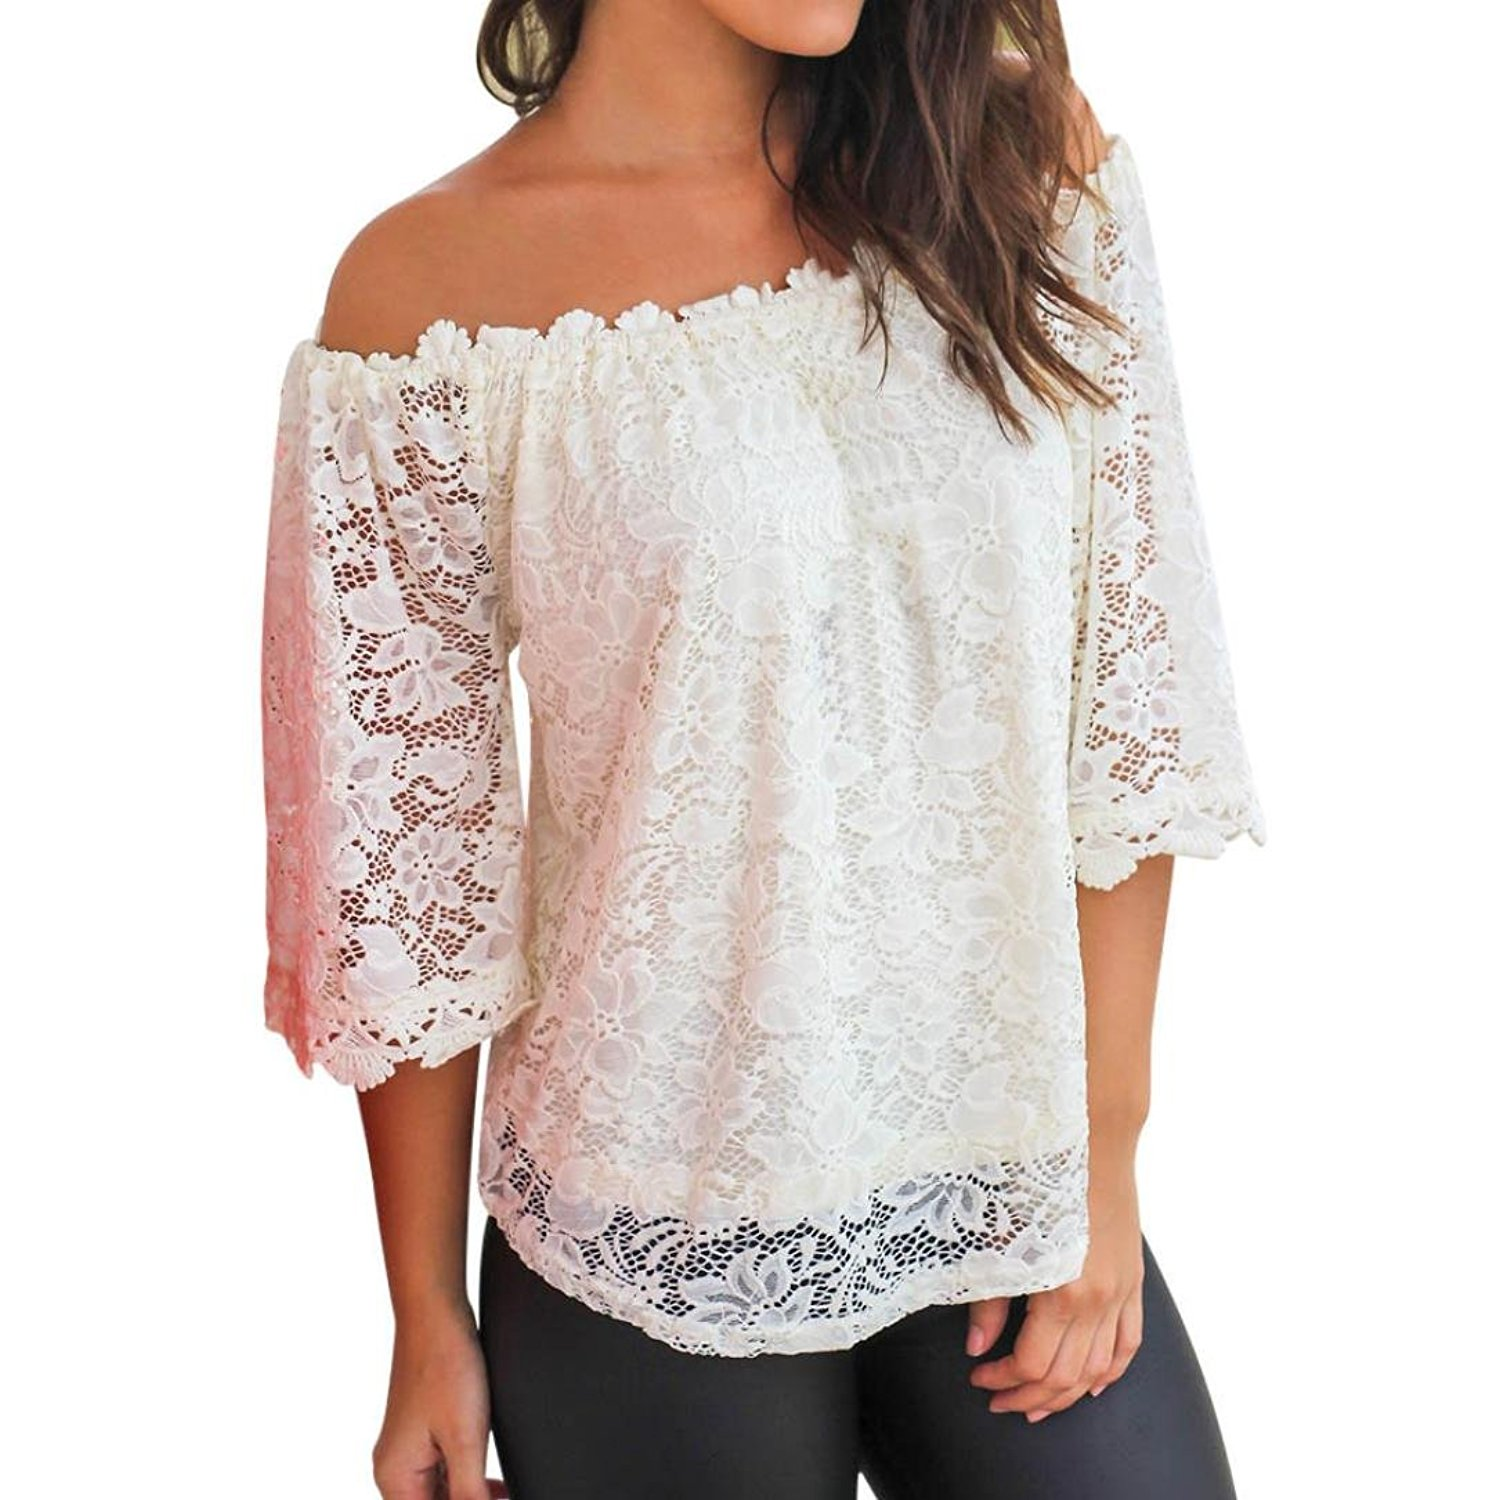 Ninasill Clearance ! Women Blouse, Hot Off Shoulder Lace Short Sleeve Boat Neck T-Shirt Tops Blouse